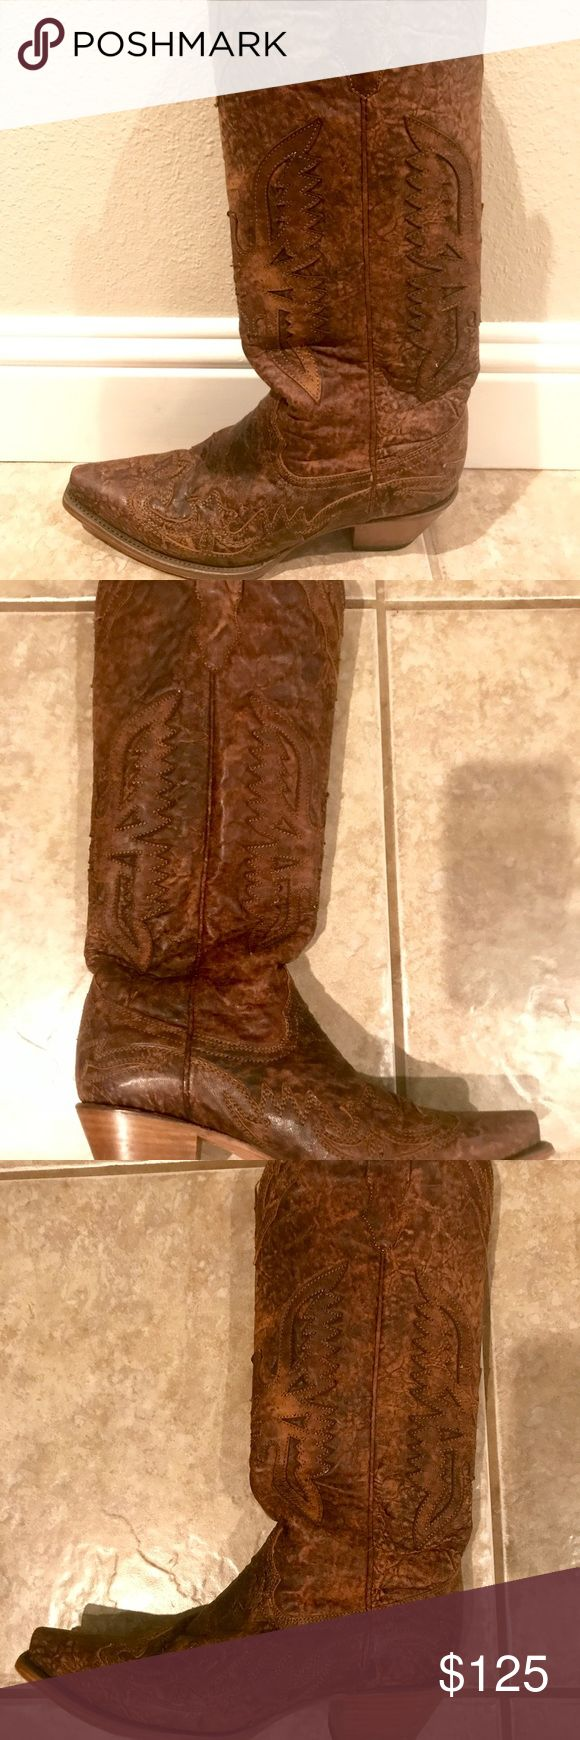 Corral Vintage Boots Corral vintage cowboy boots- tall with sniptoe. Worn less than 5 times. Dark brown, vintage 'worn' leather look. Corral Shoes